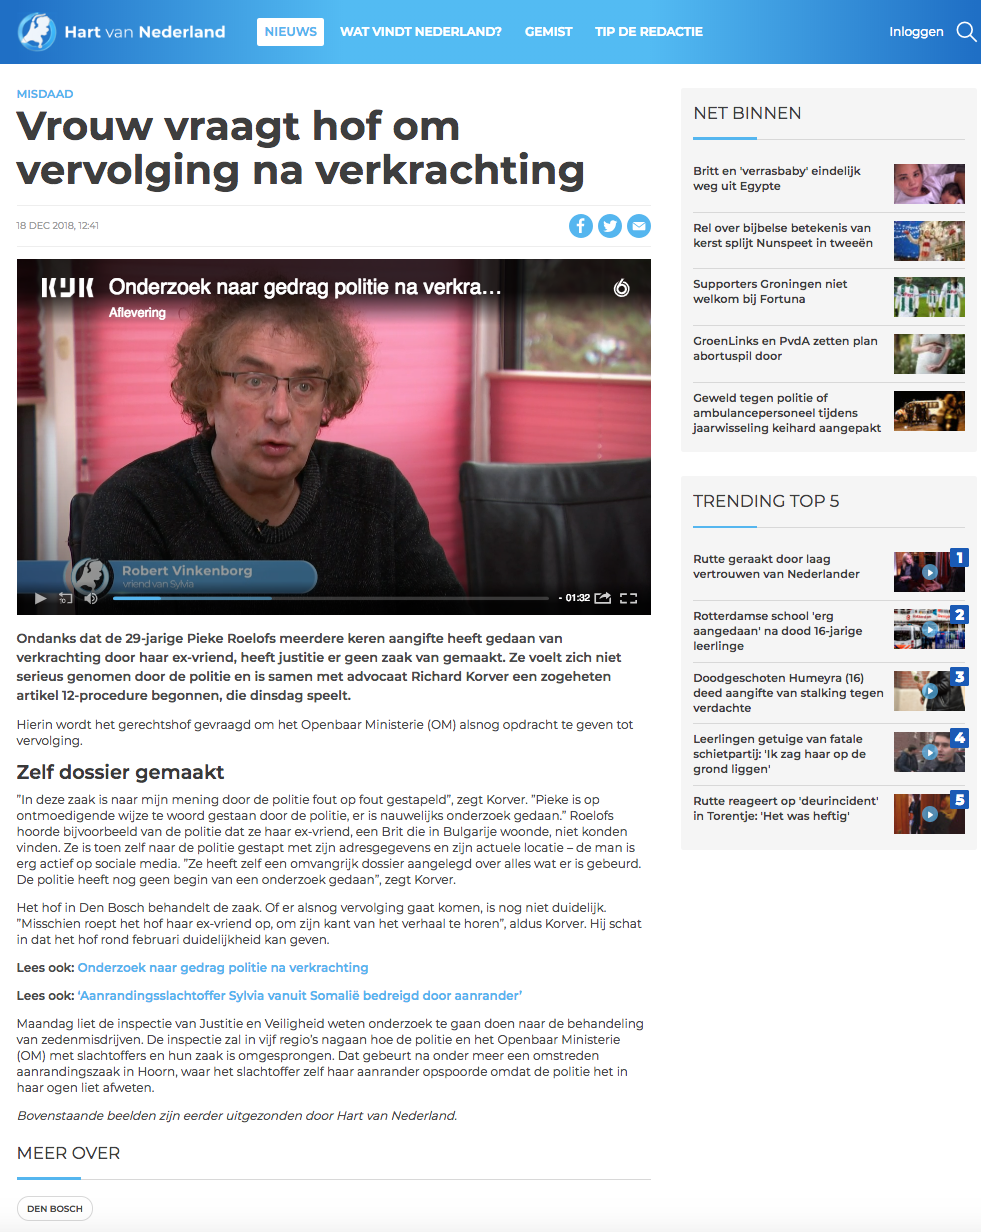 'Vrouw vraagt hof om vervolging na verkrachting'  by Hart Van Nederland addresses the Exurb1a court case as well, including the fact that the Dutch government has started to investigate the Dutch police, concerning how they've been treating rape victims and their cases.